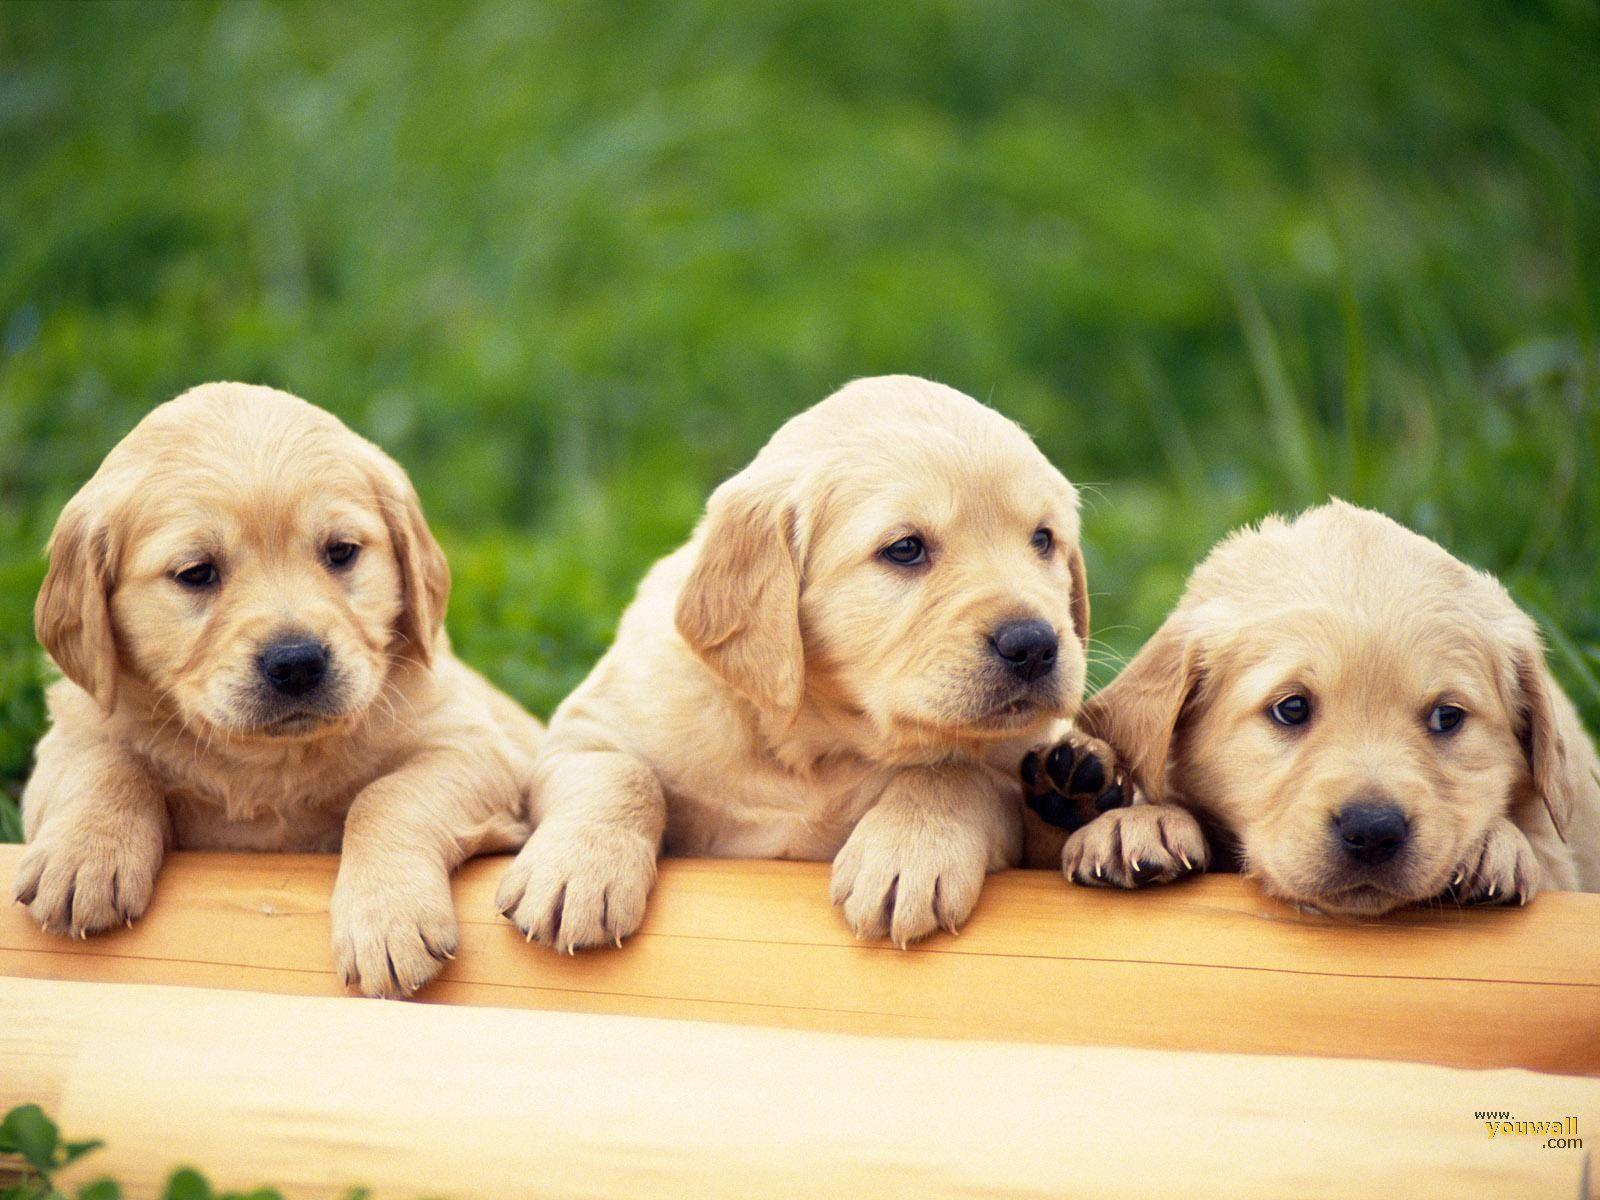 Animals For > Cute Dog Backgrounds For Desktop